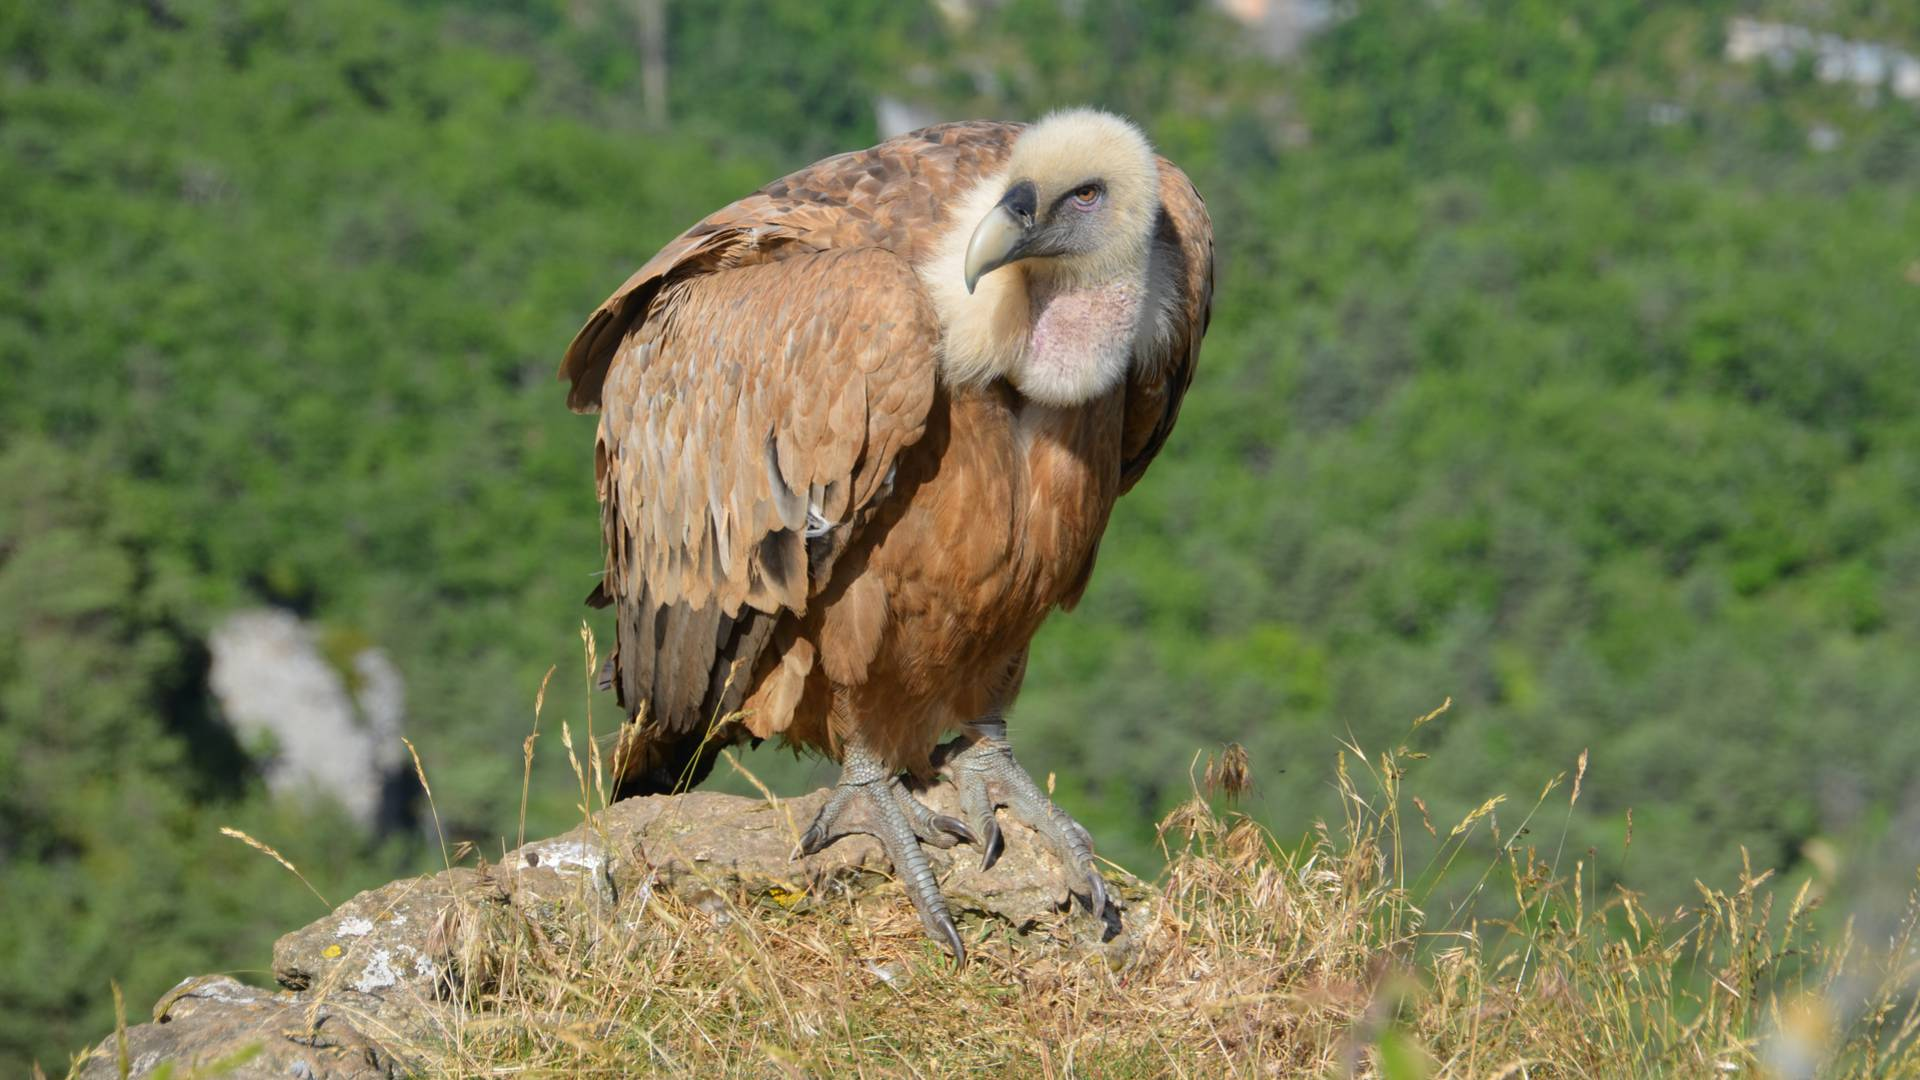 A griffon vulture overlooking the Tarn river Canyon